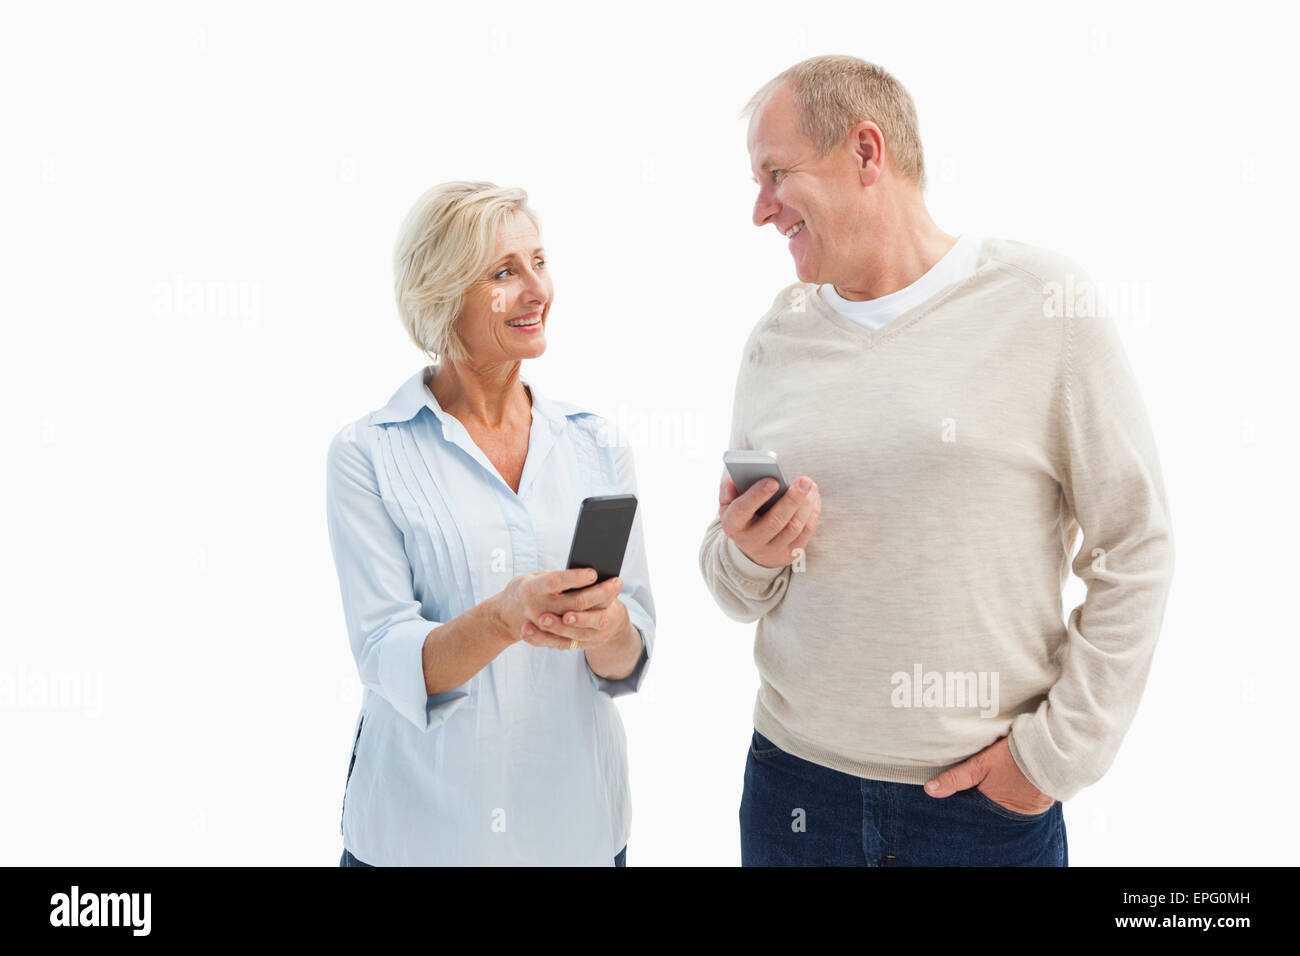 Happy mature couple using their smartphones - Stock Image